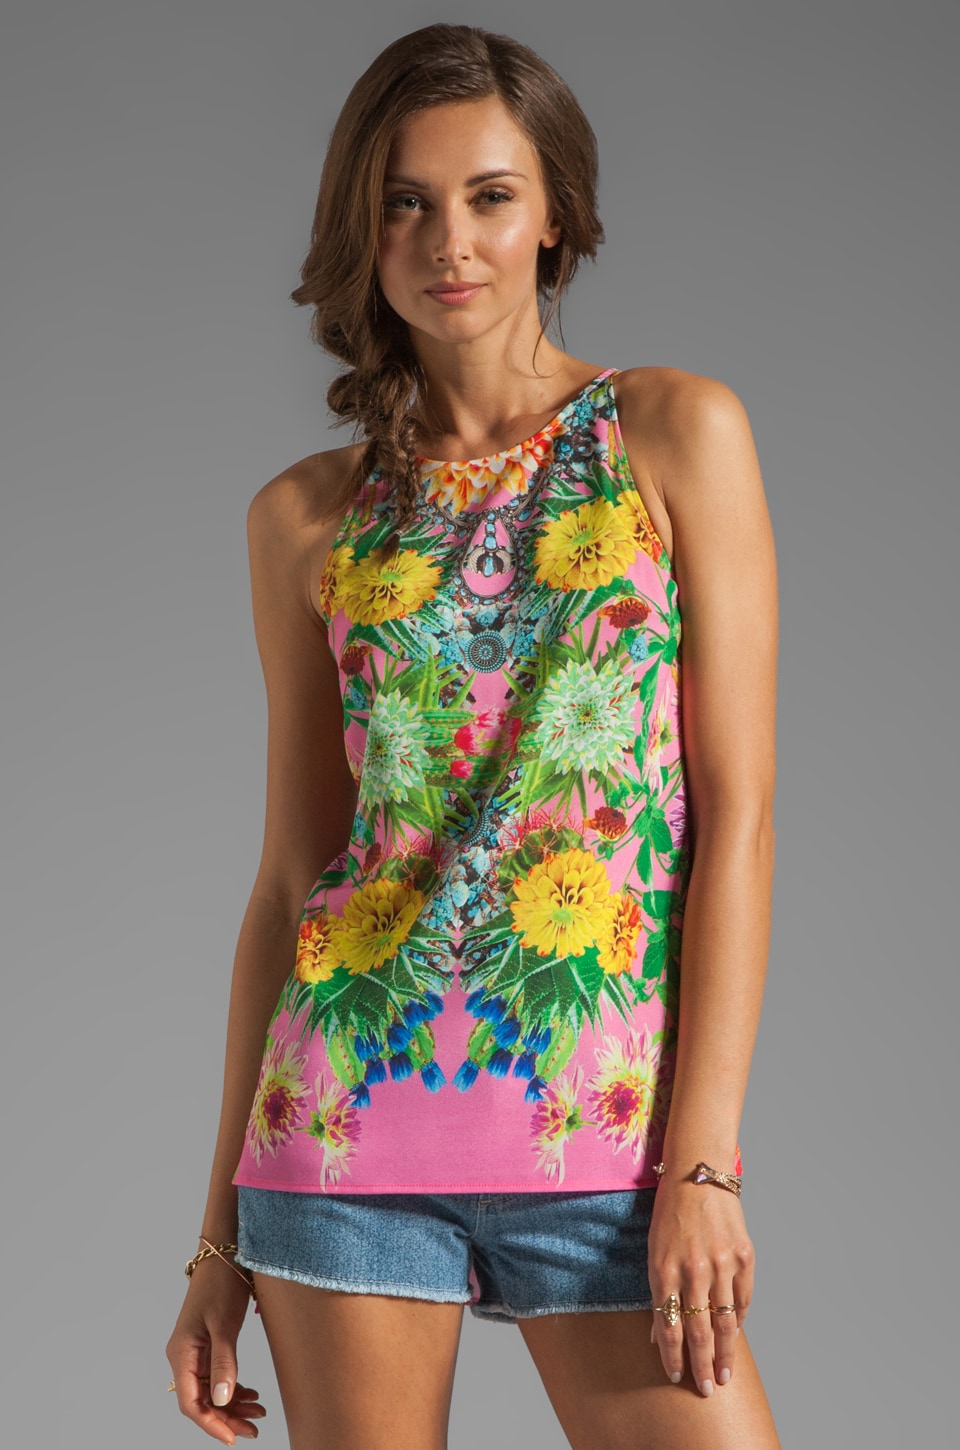 Clover Canyon Turquoise Valley Top in Pink